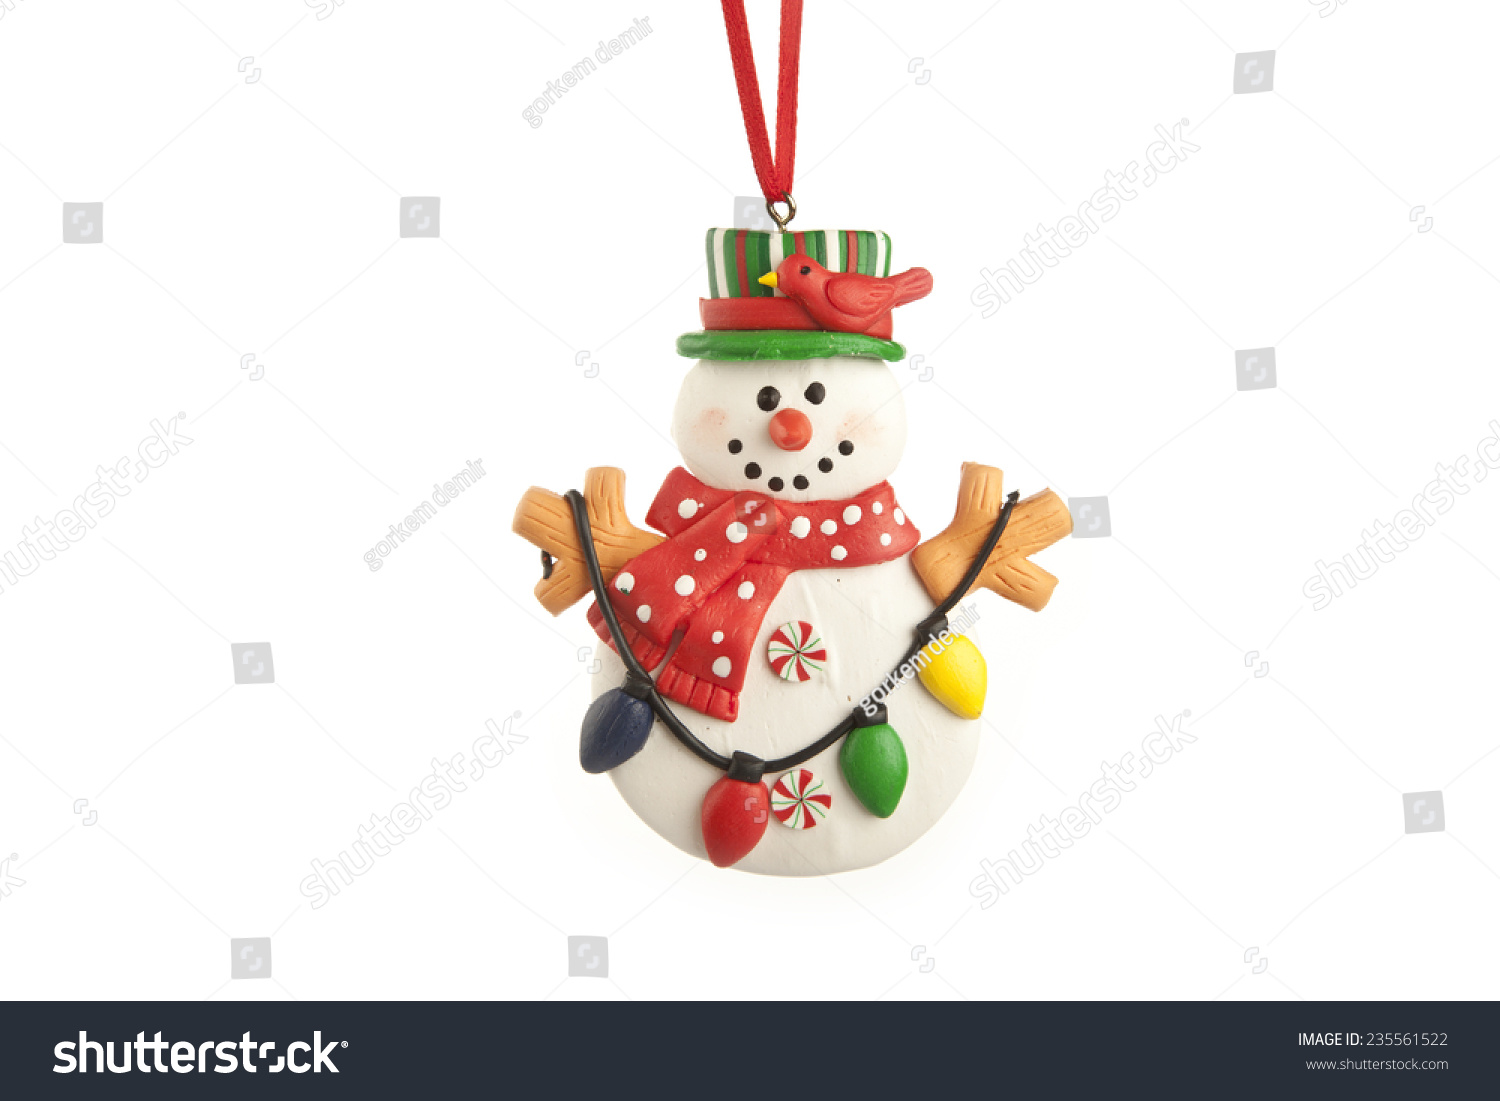 Christmas tree decorations snowman stock photo 235561522